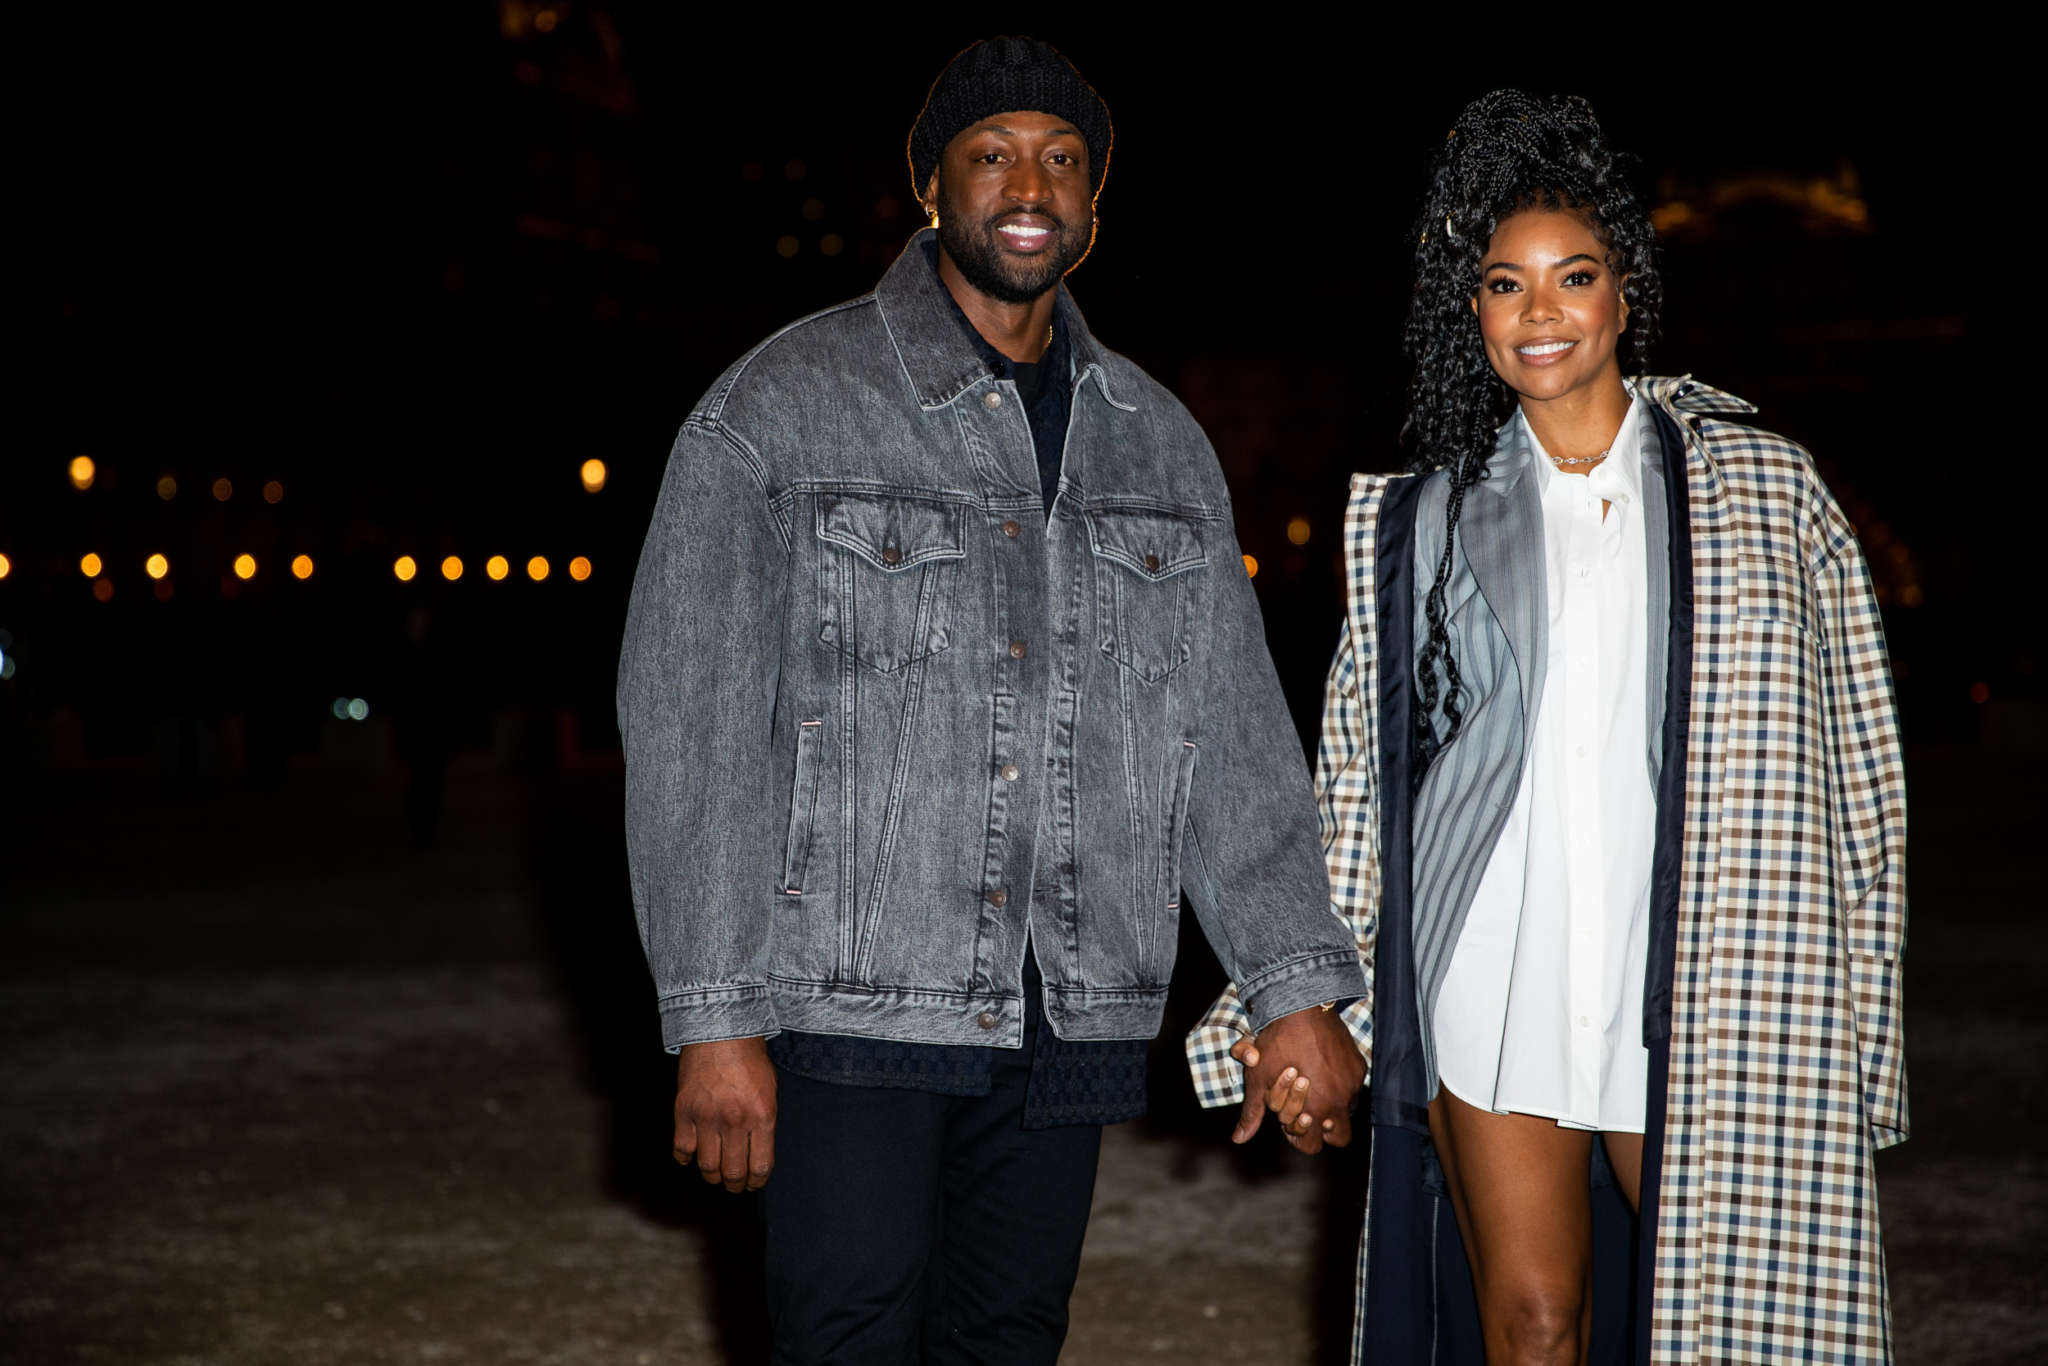 Gabrielle Union Makes Fans Happy With This Photo Featuring Dwyane Wade And Their Daughter, Kaavia James